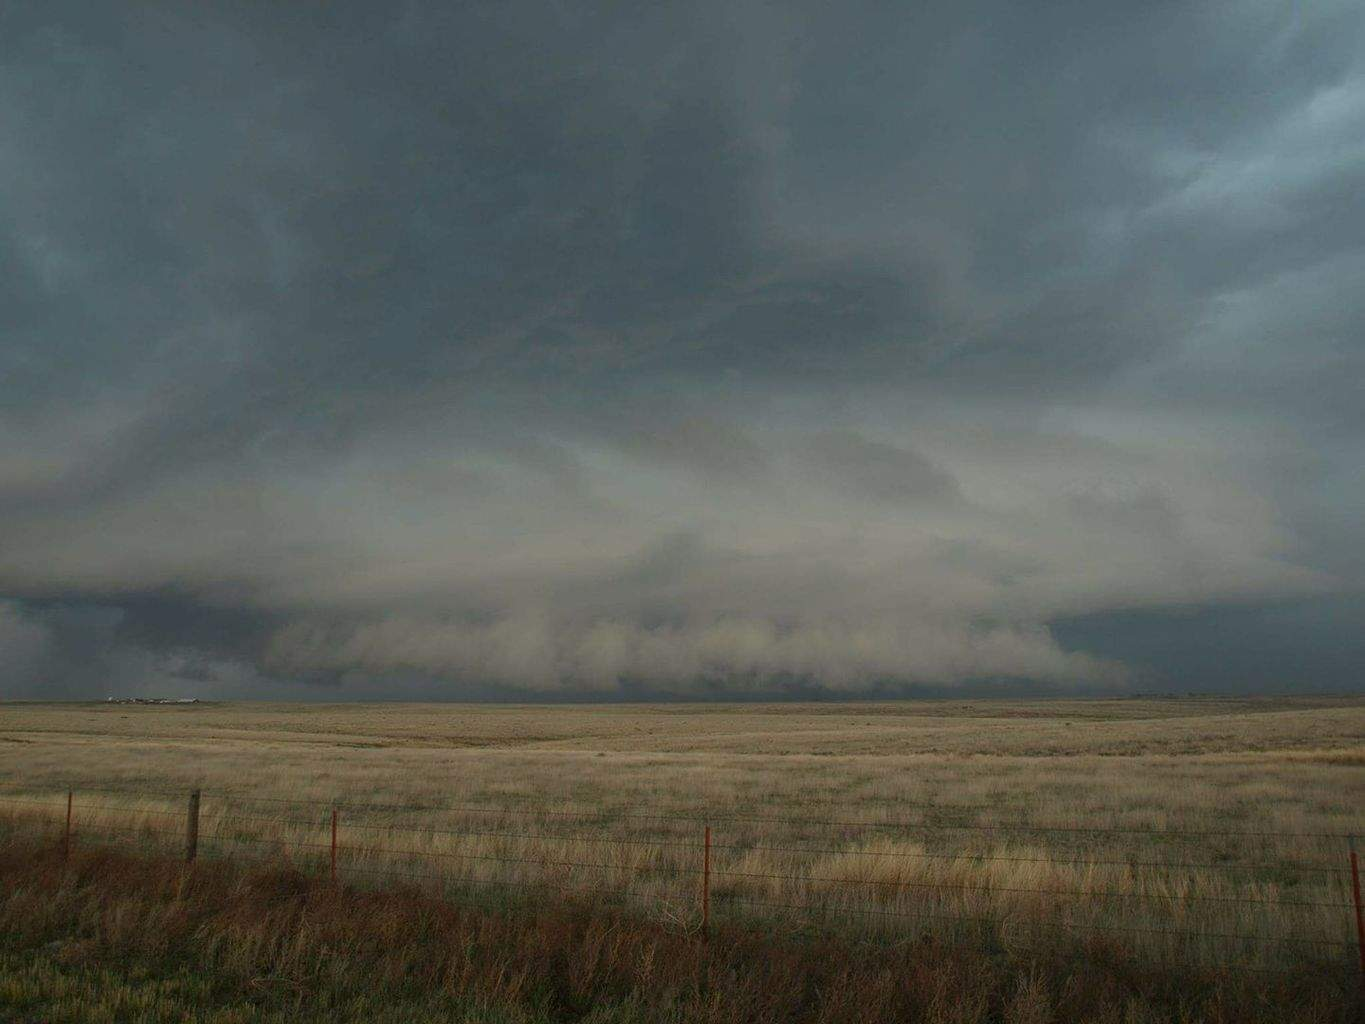 A little over two years ago I drove solo from Missouri to the Texas Panhandle and was treated to a tornado near Groom Texas as well as this incredible Supercell scraping the ground in the Texas Panhandle